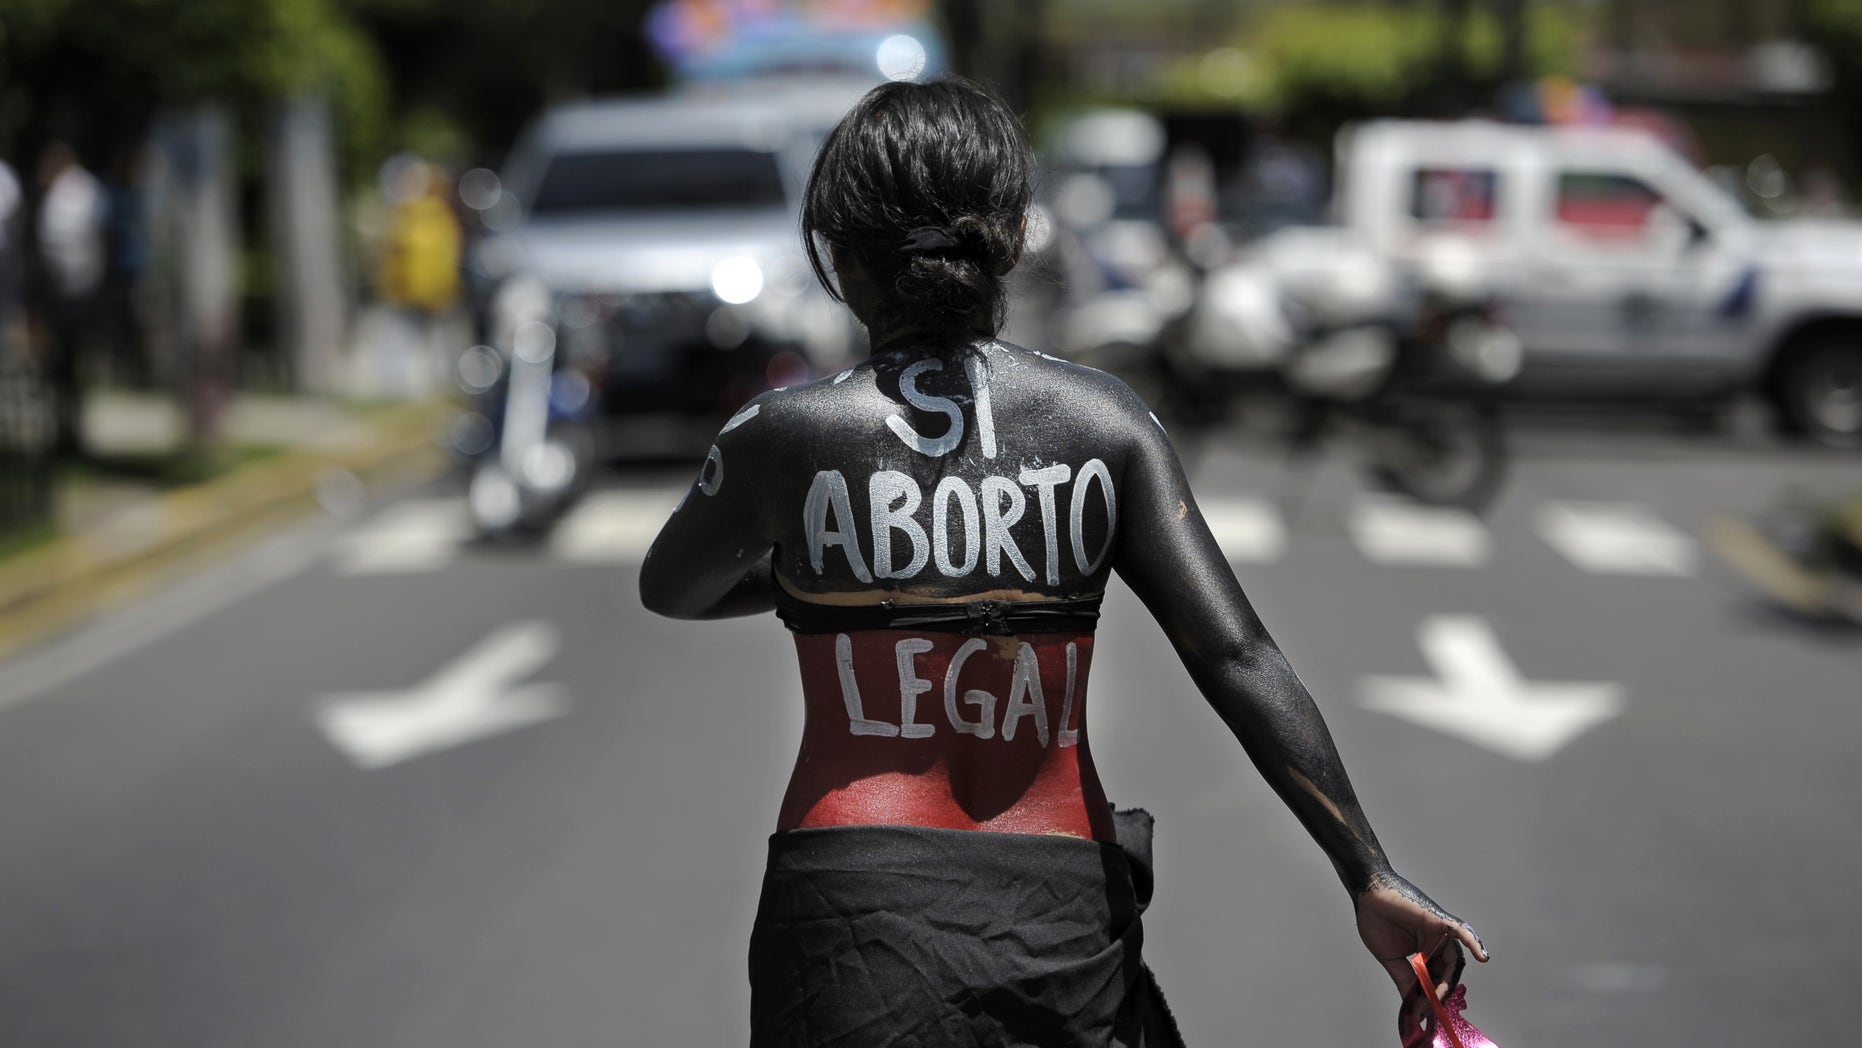 A woman participates in a march on the International Day of Action for the Decriminalization of Abortion, on September 28, 2012 in San Salvador. Salvadorean women marched to ask the government to legalize abortion as a right for women.  AFP PHOTO/Jose CABEZAS        (Photo credit should read Jose CABEZAS/AFP/GettyImages)